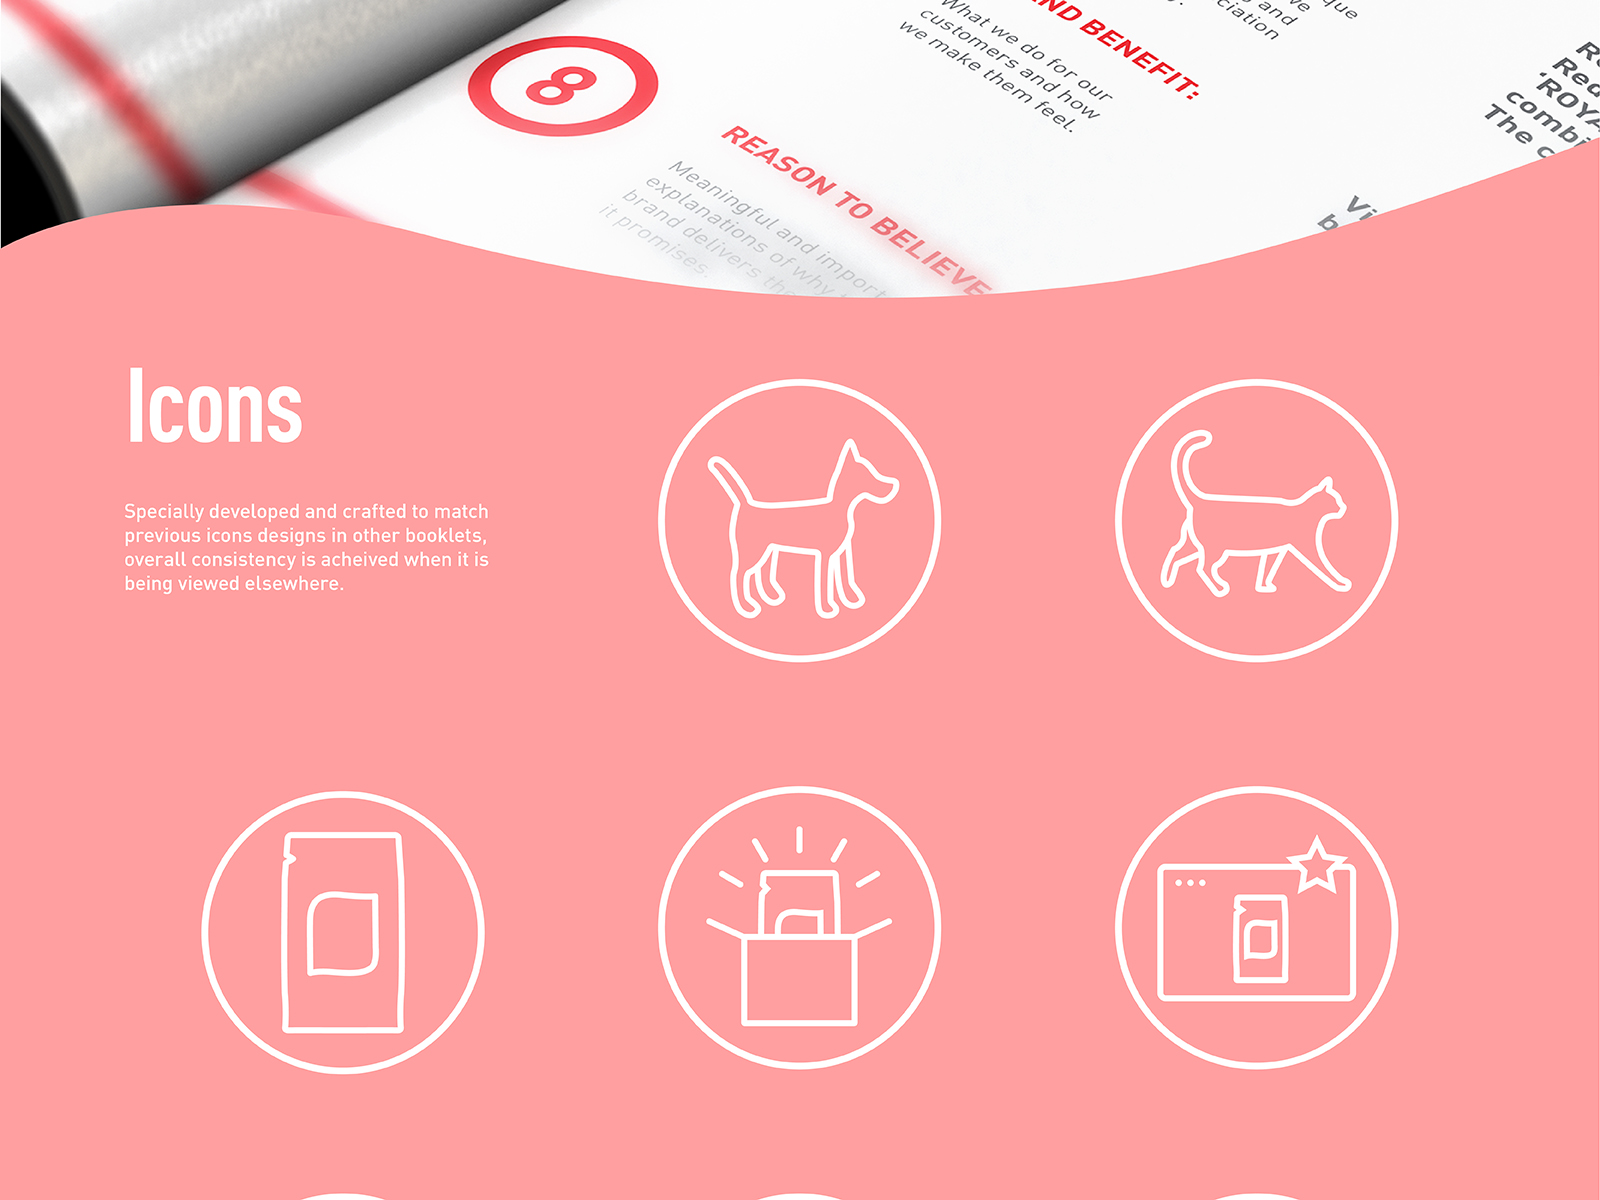 Royal Canin digital CI extension booklet icons development for dog, cat, product, packaging and online photo display